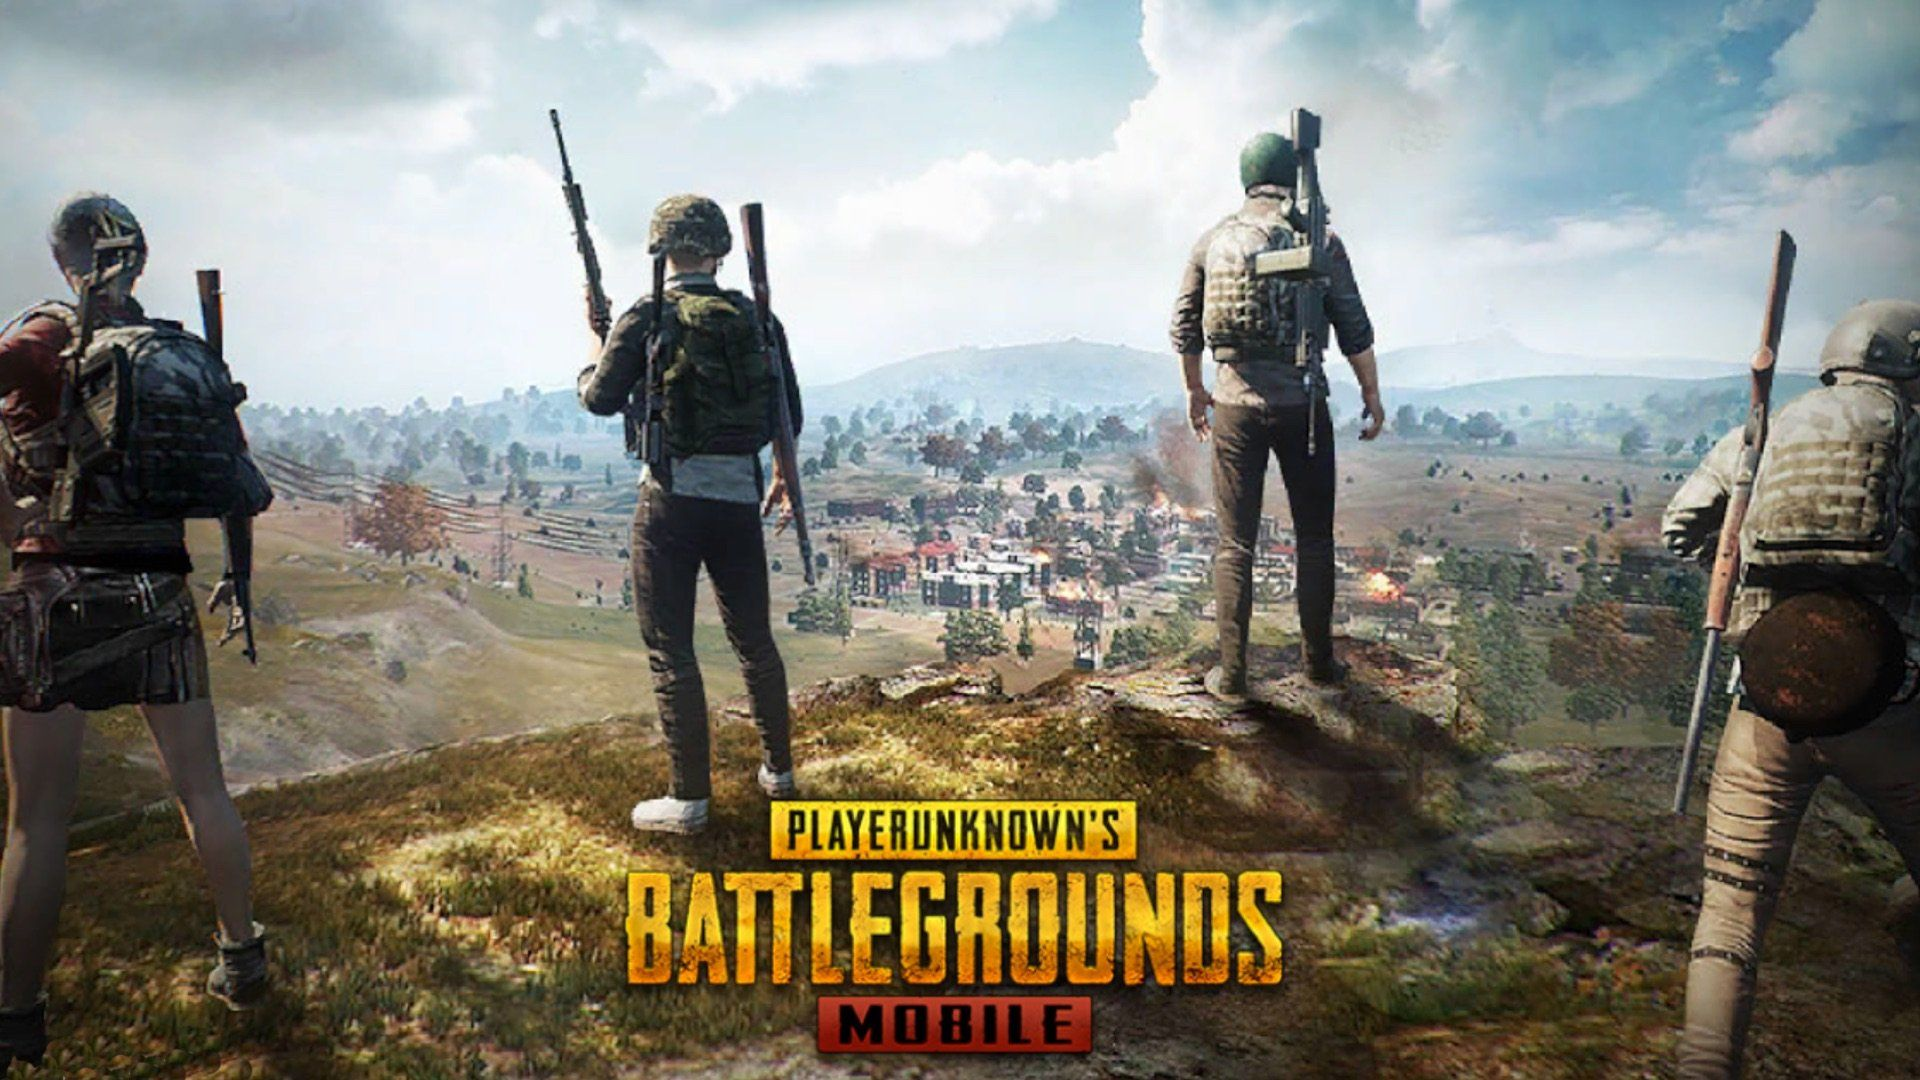 Pubg Mobile Hack 2018 March Free Battle Points And Other Cheats